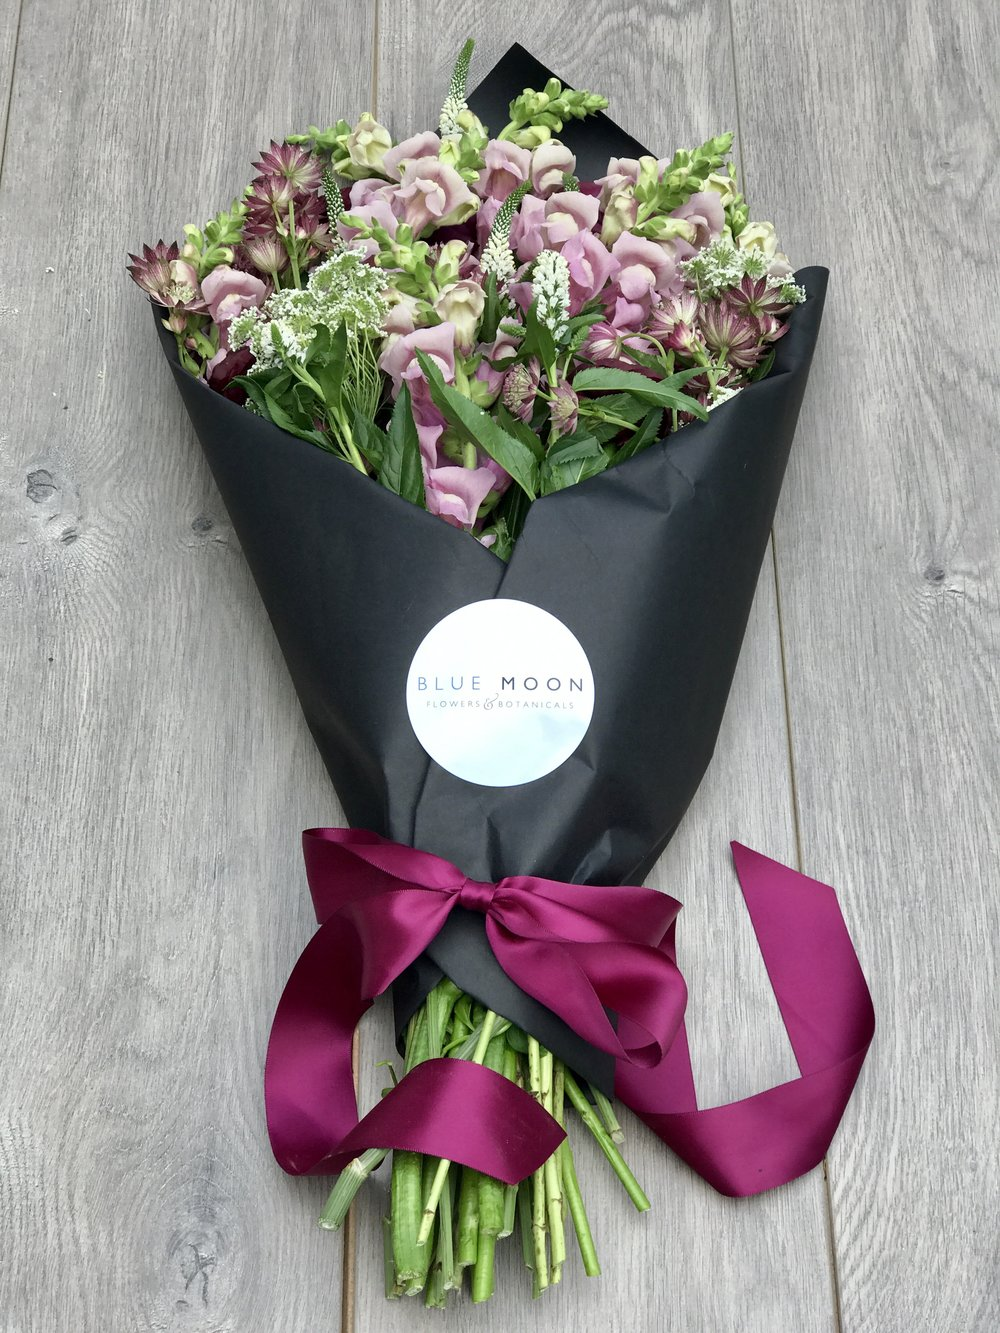 Csa bouquet subscription locally grown flower bouquets make great gifts izmirmasajfo